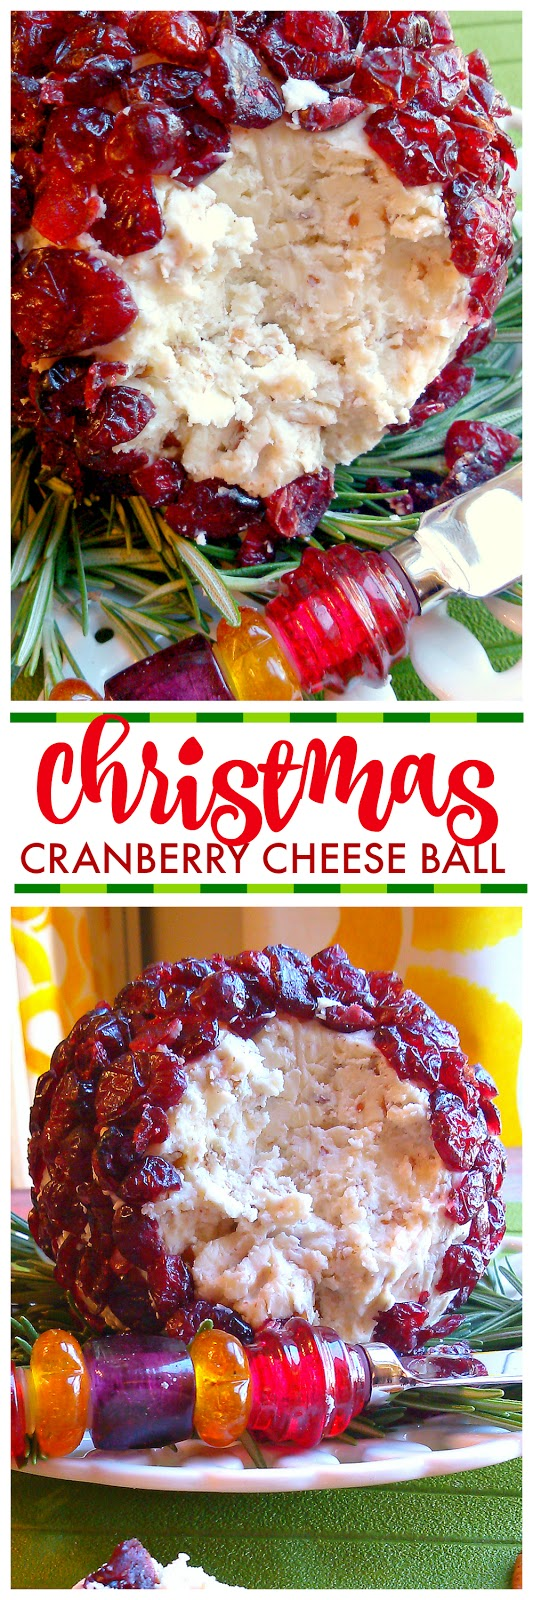 Christmas Cranberry Cheese Ball! A festive cheese ball recipe made with goat cheese or cream cheese, white cheddar, pecans and cranberries. #christmas #appetizer #recipe